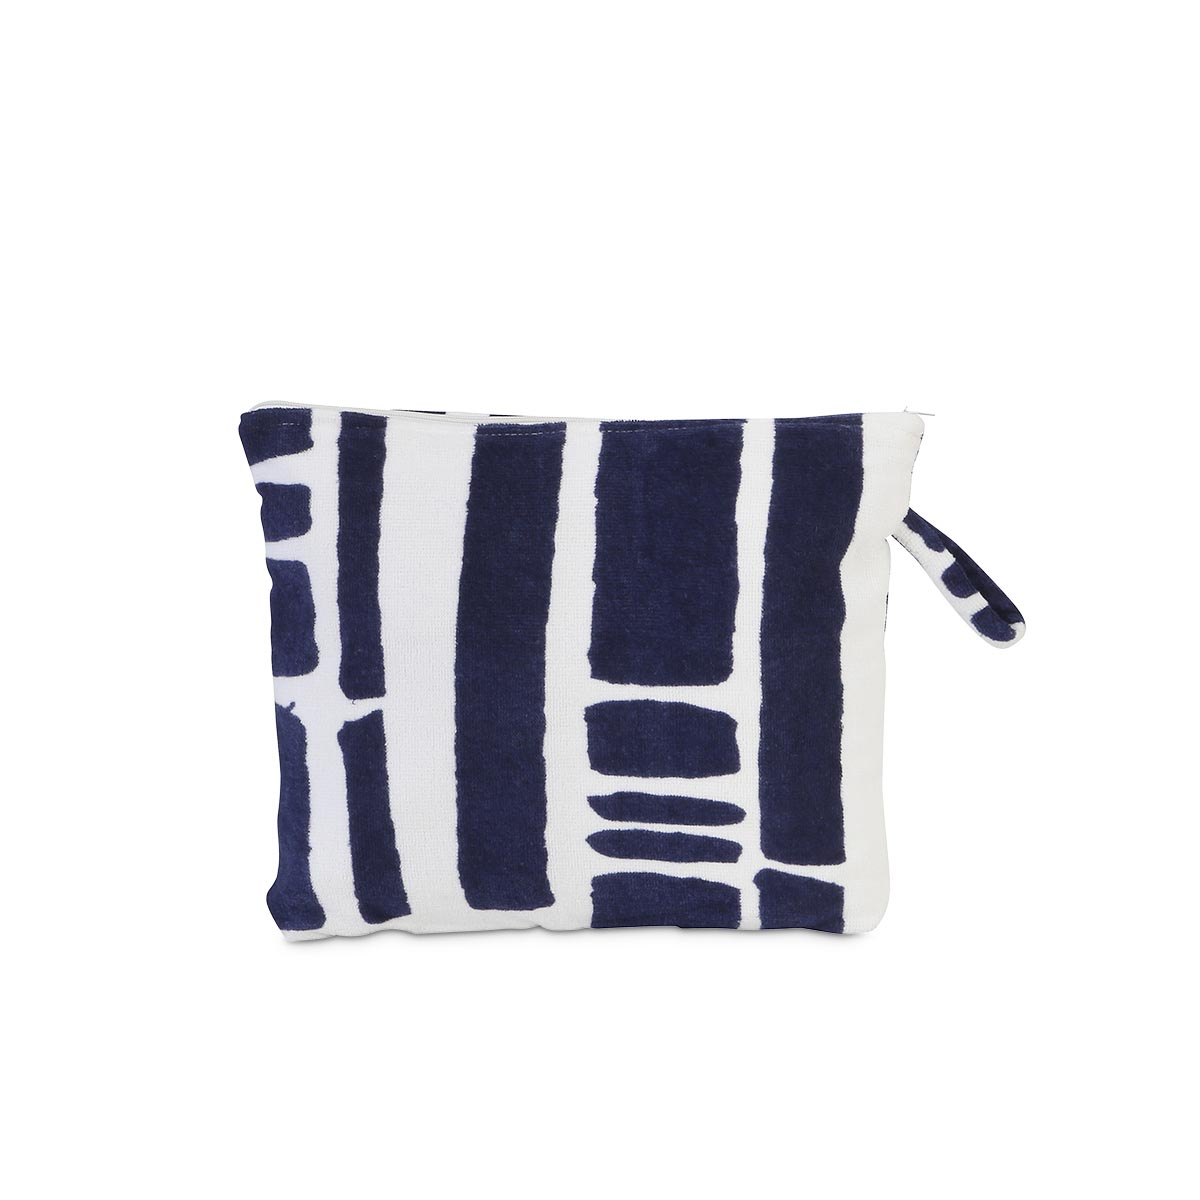 bamboo navy ditty bag